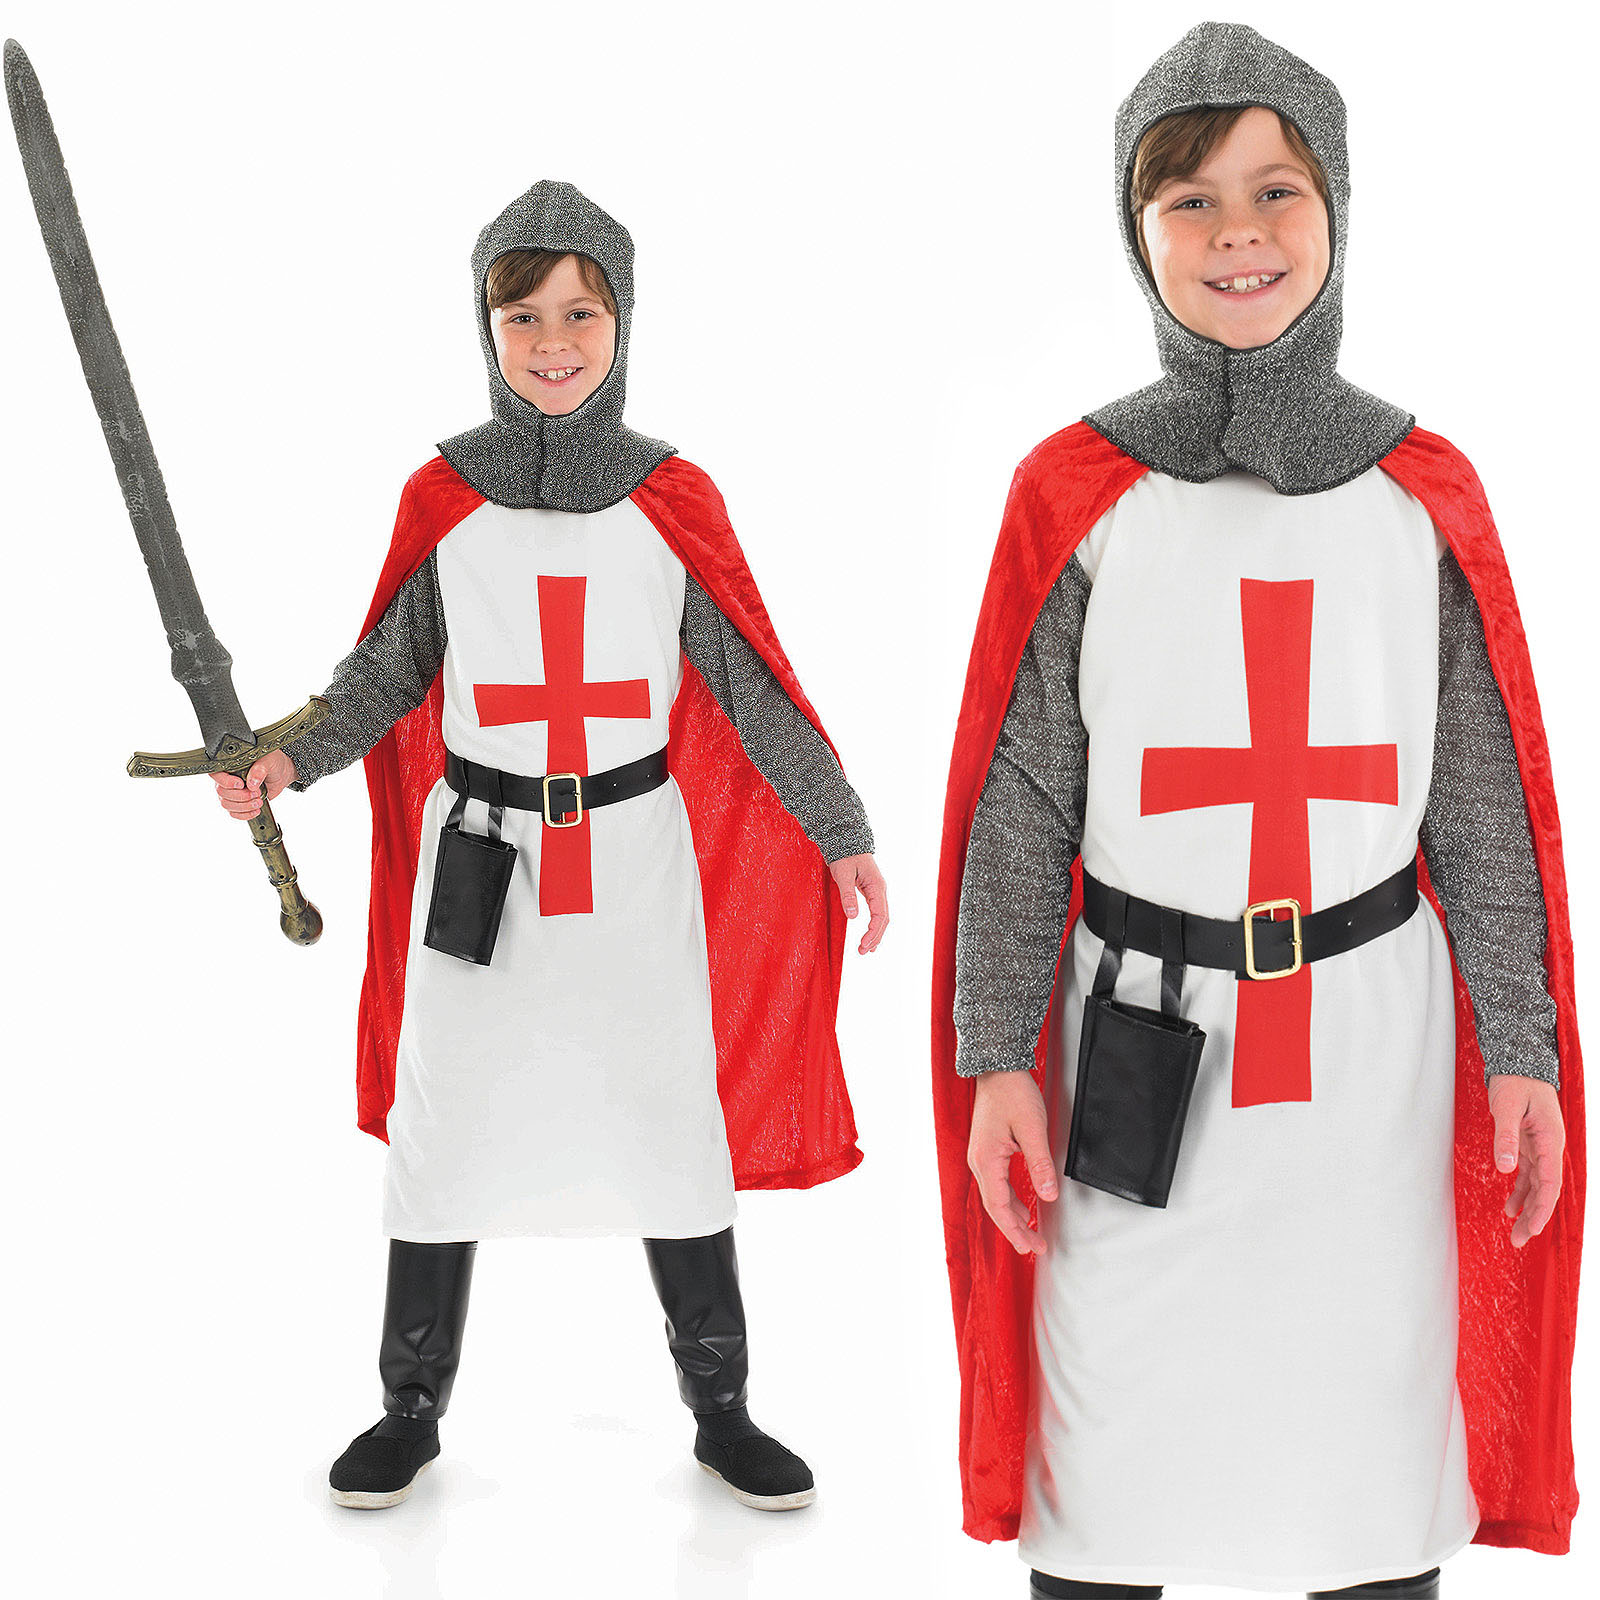 Childrens Crusader Knight Boy Fancy Dress Costume Medieval Kids Outfit 4-12 Yrs  sc 1 st  Fancy Dress 365 & Childrens Crusader Knight Boy Fancy Dress Costume Medieval Kids ...